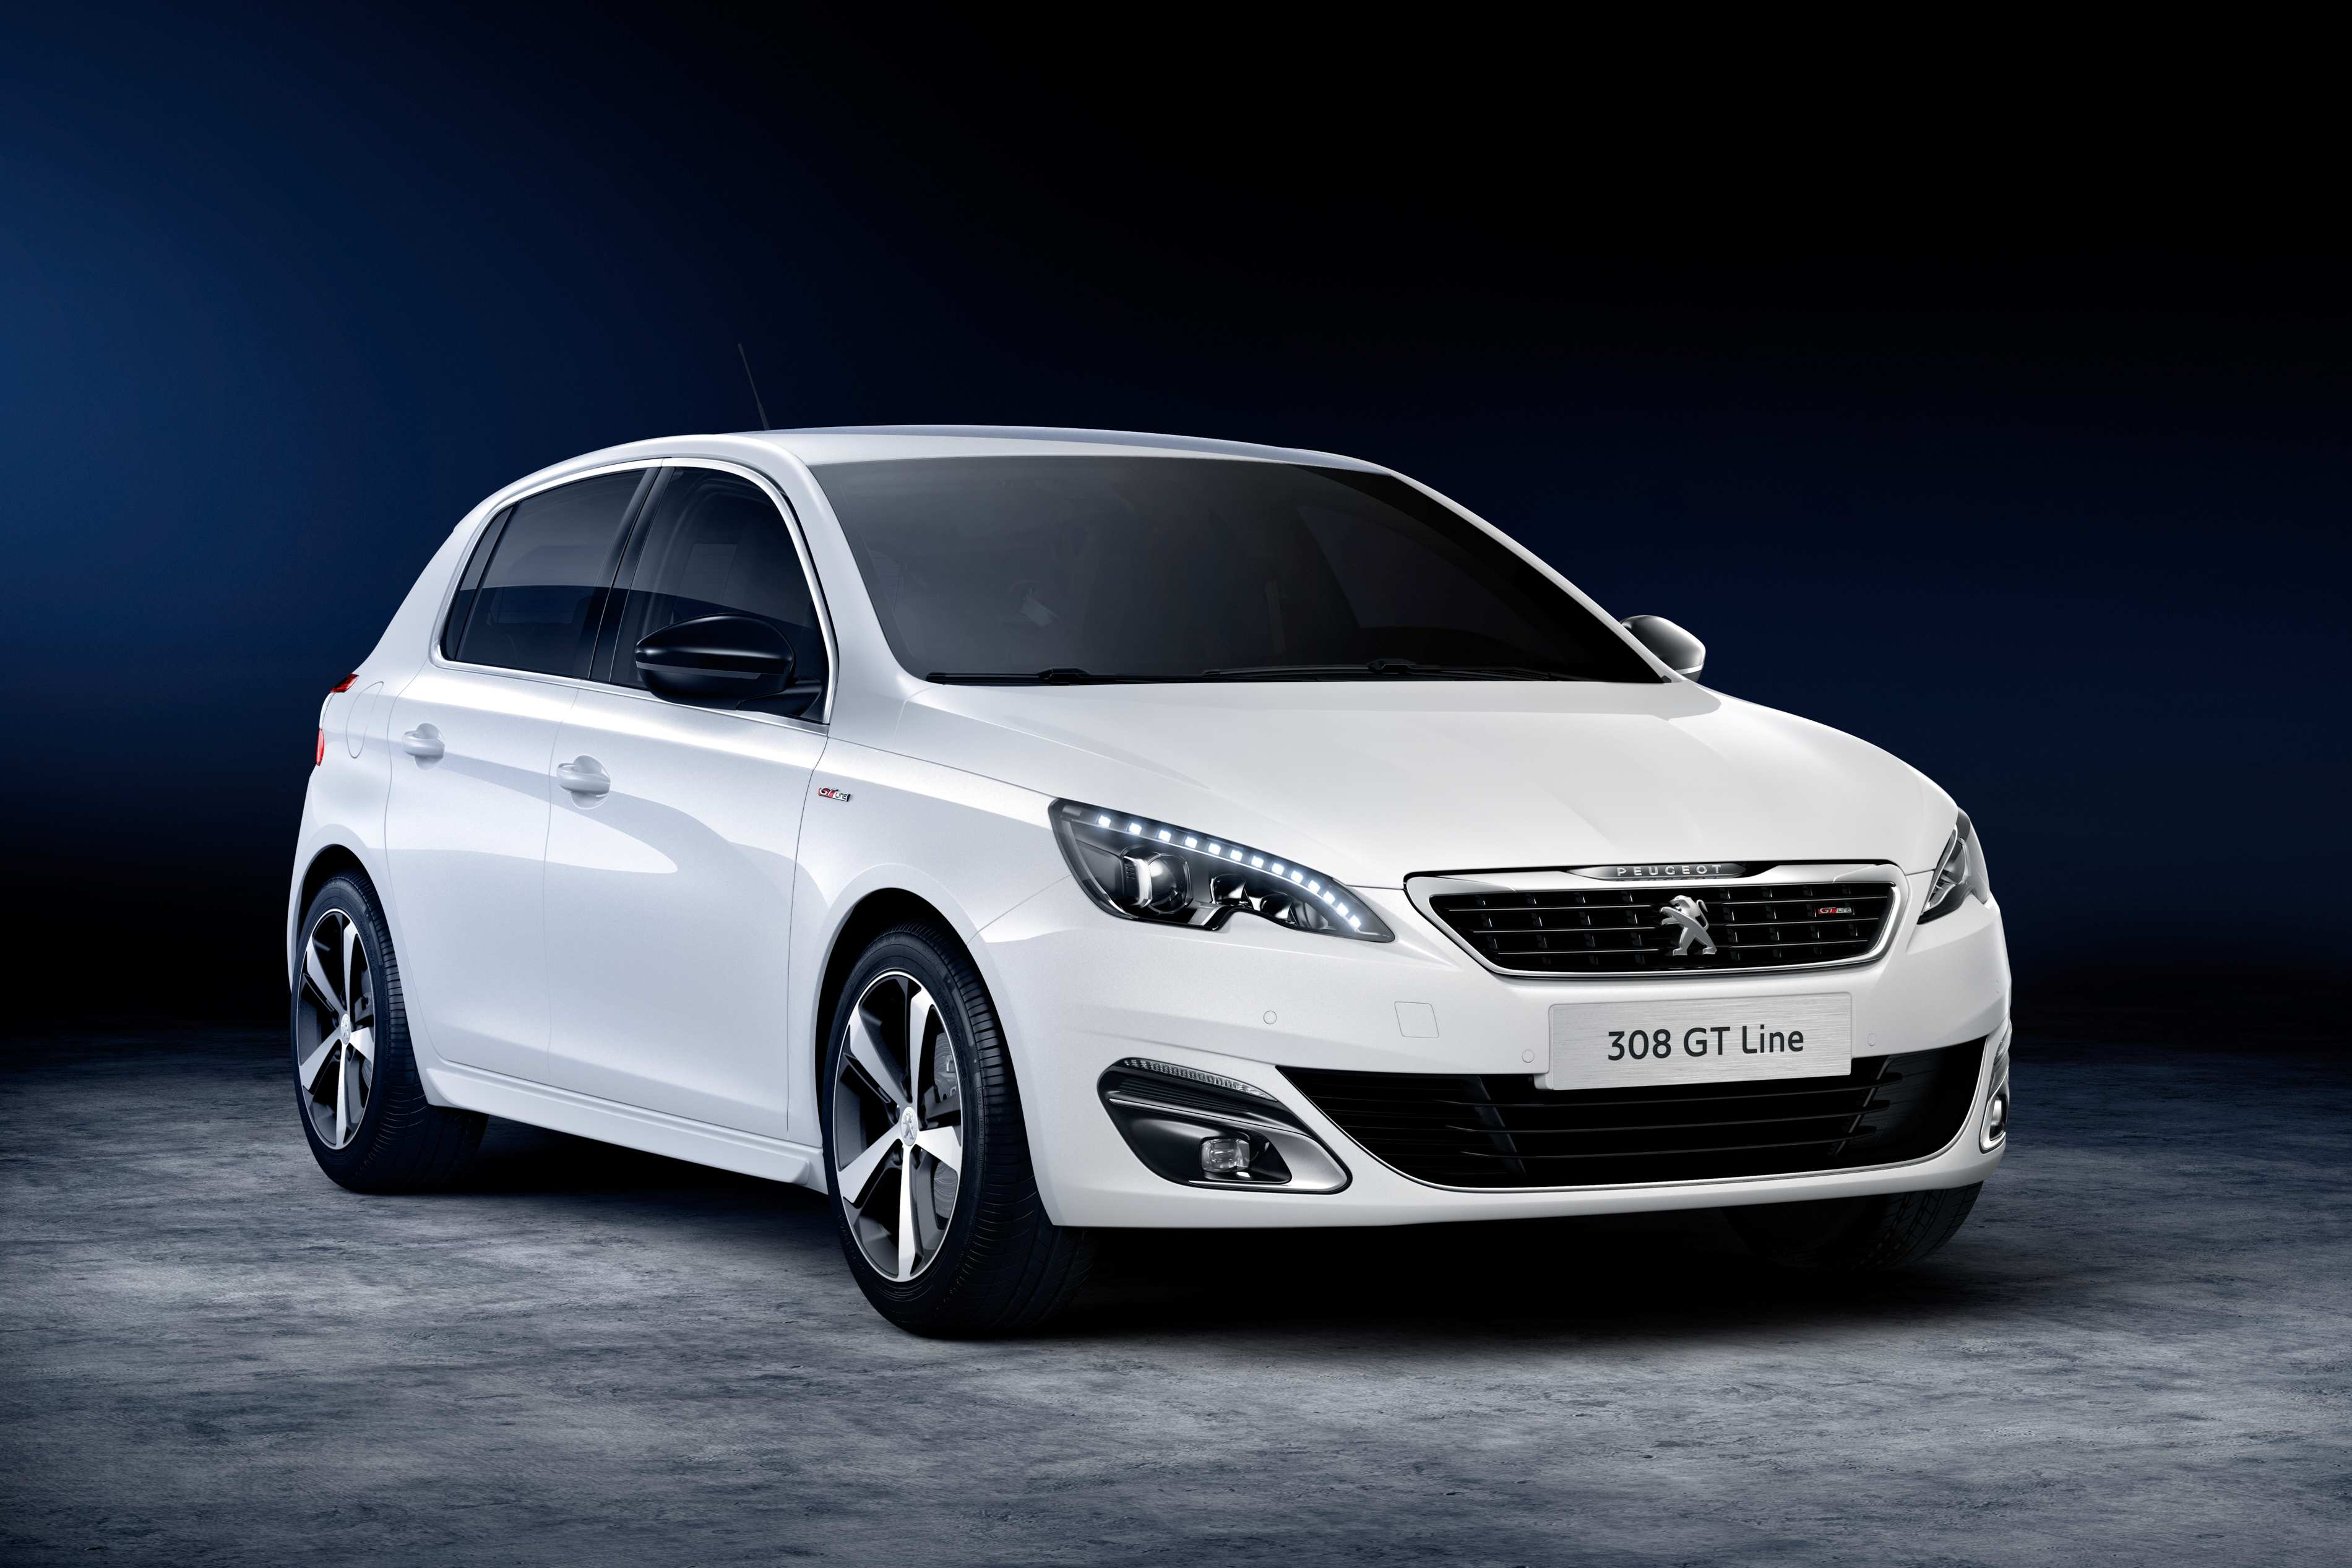 308 GT-Line leverages the visual muscle of the GT and GTi variants, while benefitting from Peugeot's highly awarded PureTech turbo-petrol drivetrain.